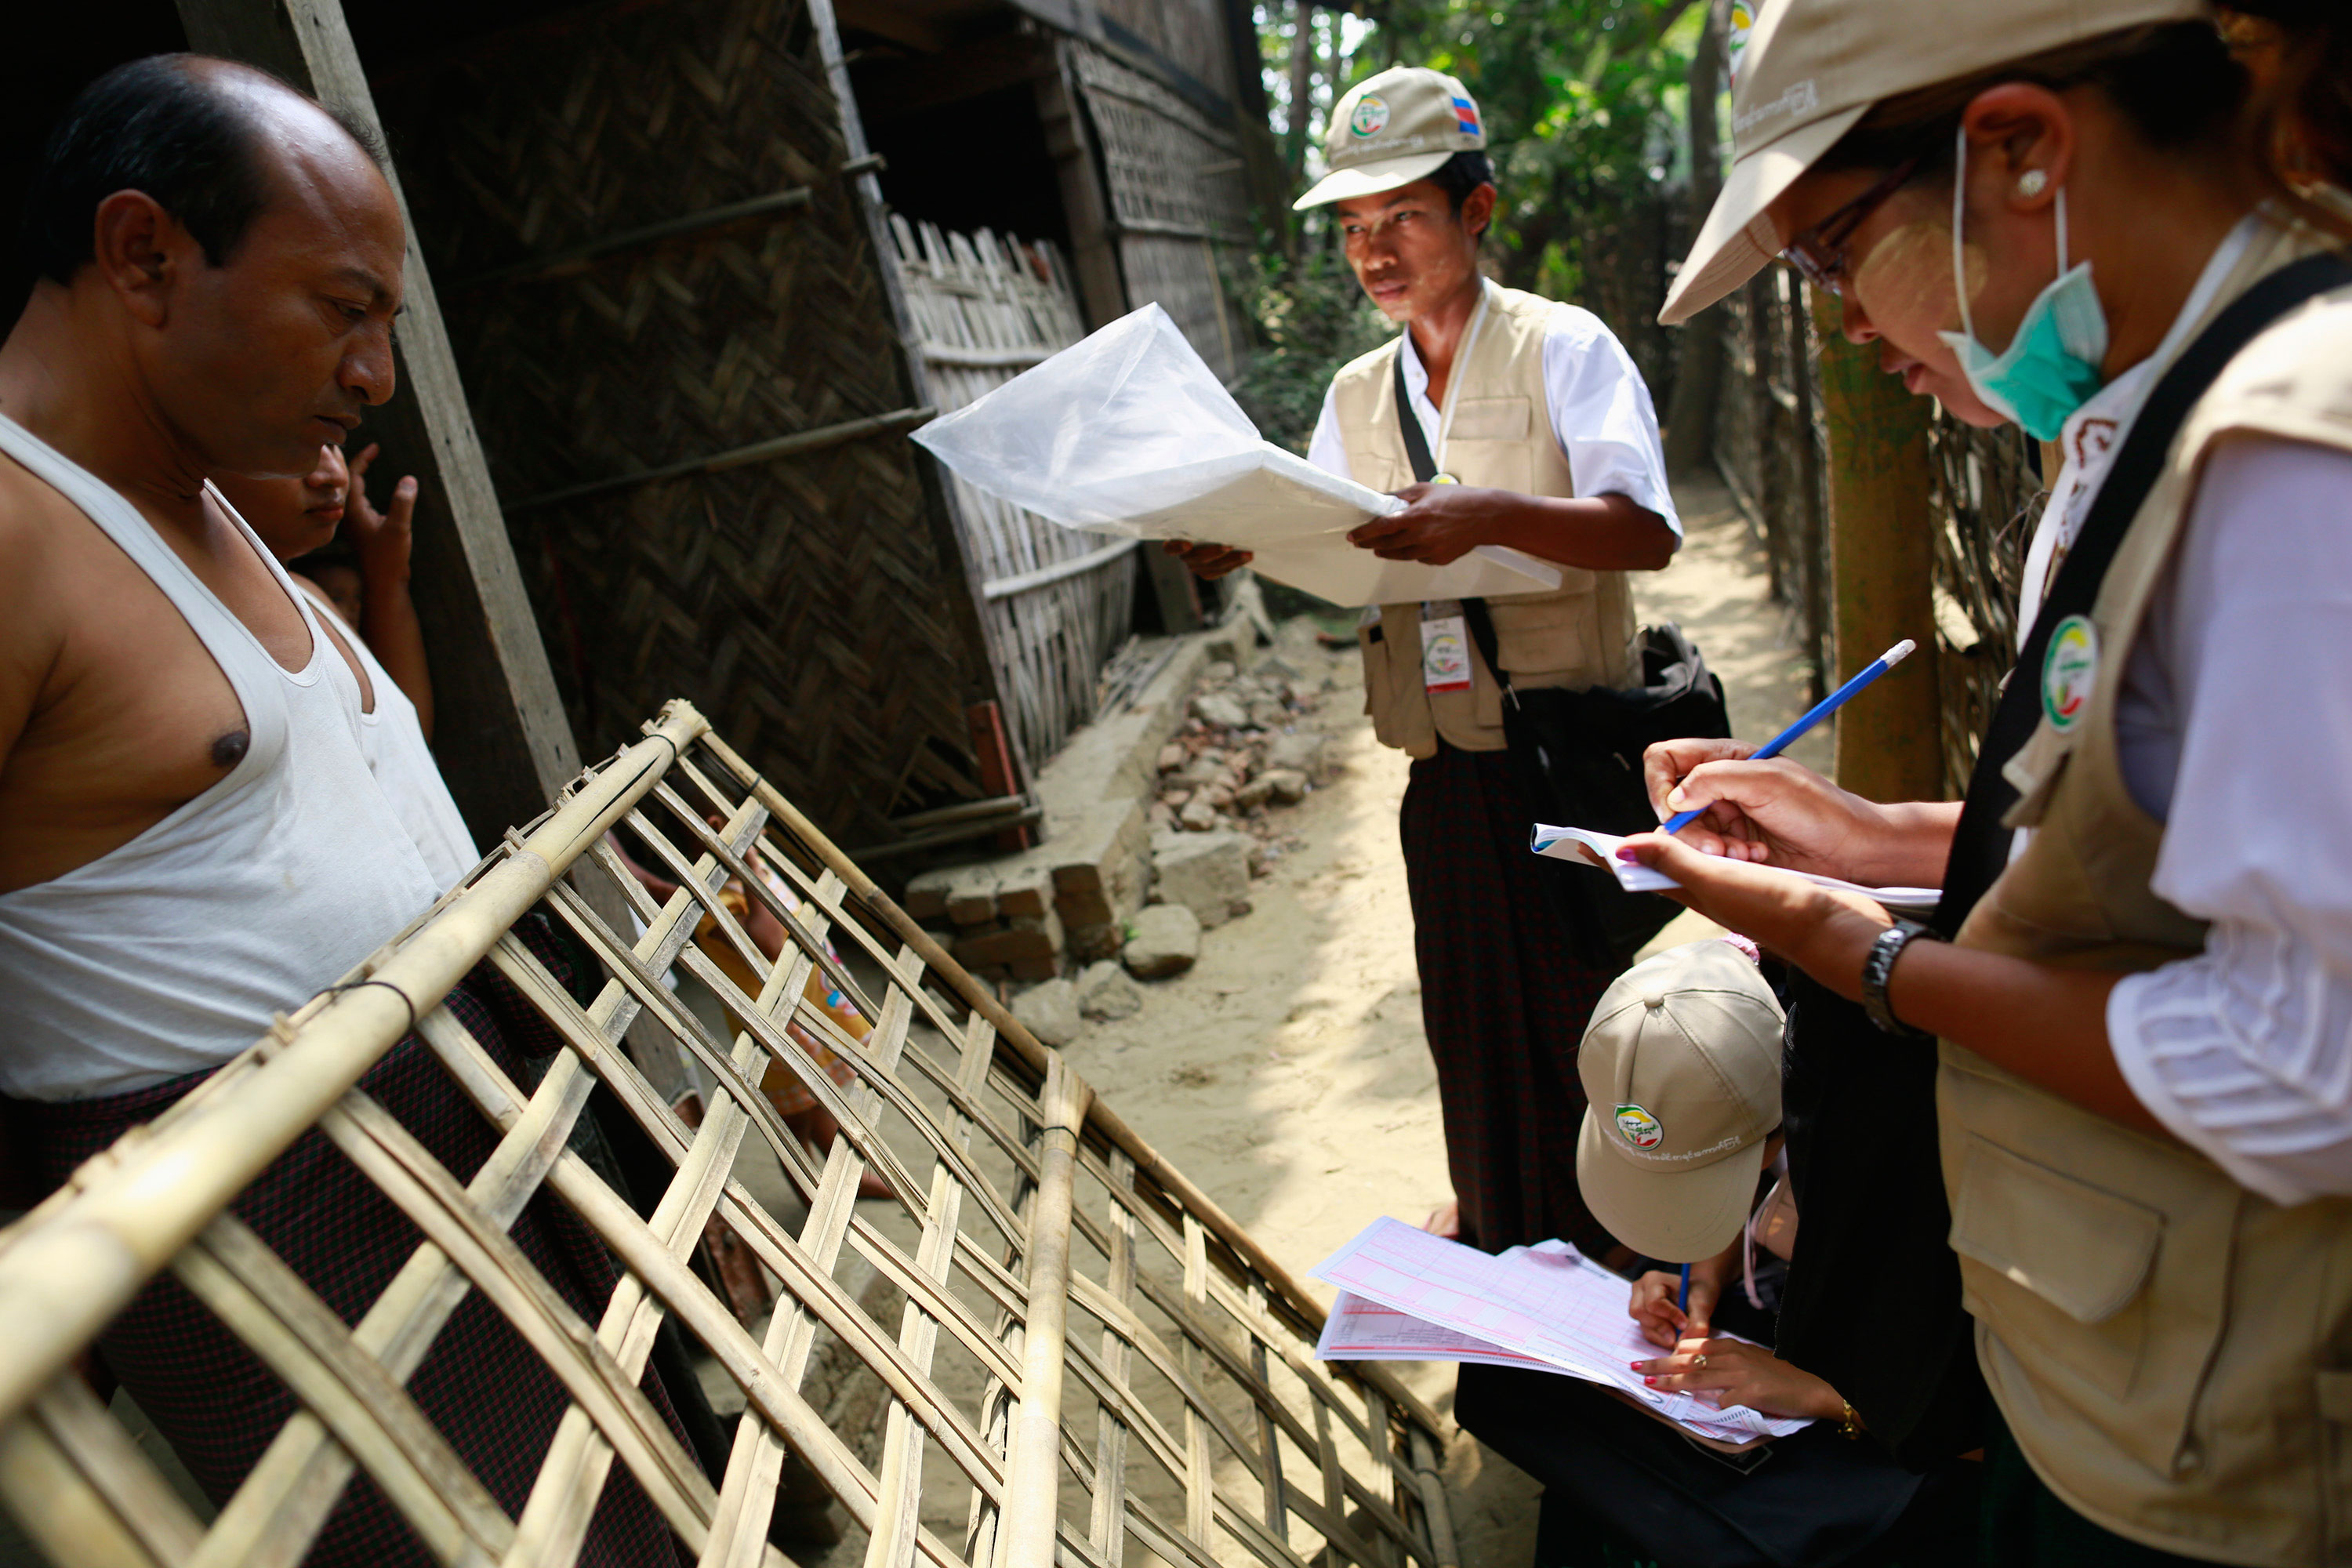 Burmese volunteers speak to a family during a national census at a Rohingya village in Sittwe on March 31, 2014